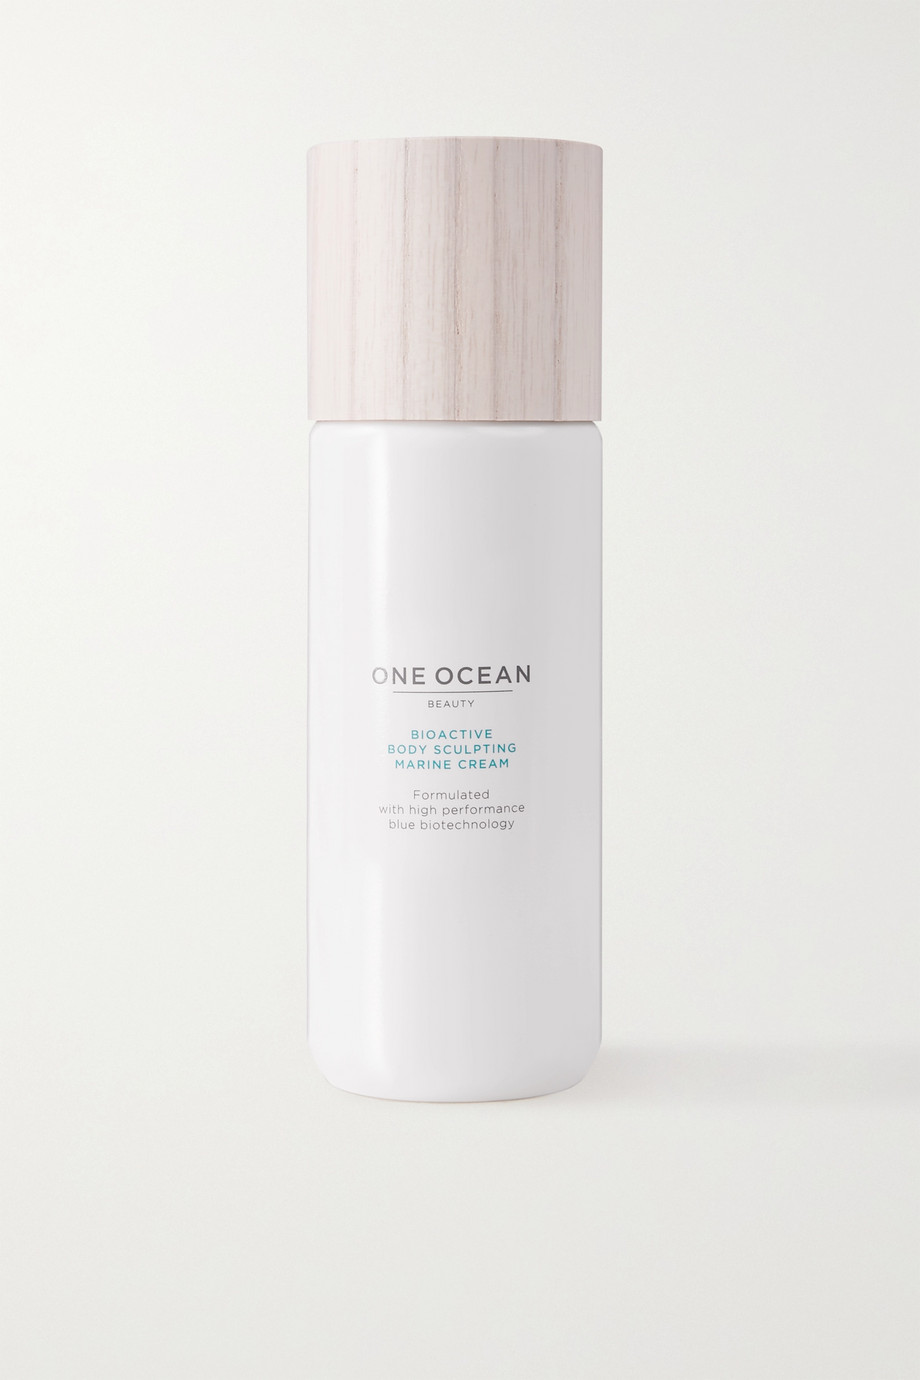 One Ocean Beauty Bioactive Body Sculpting Marine Cream, 200ml